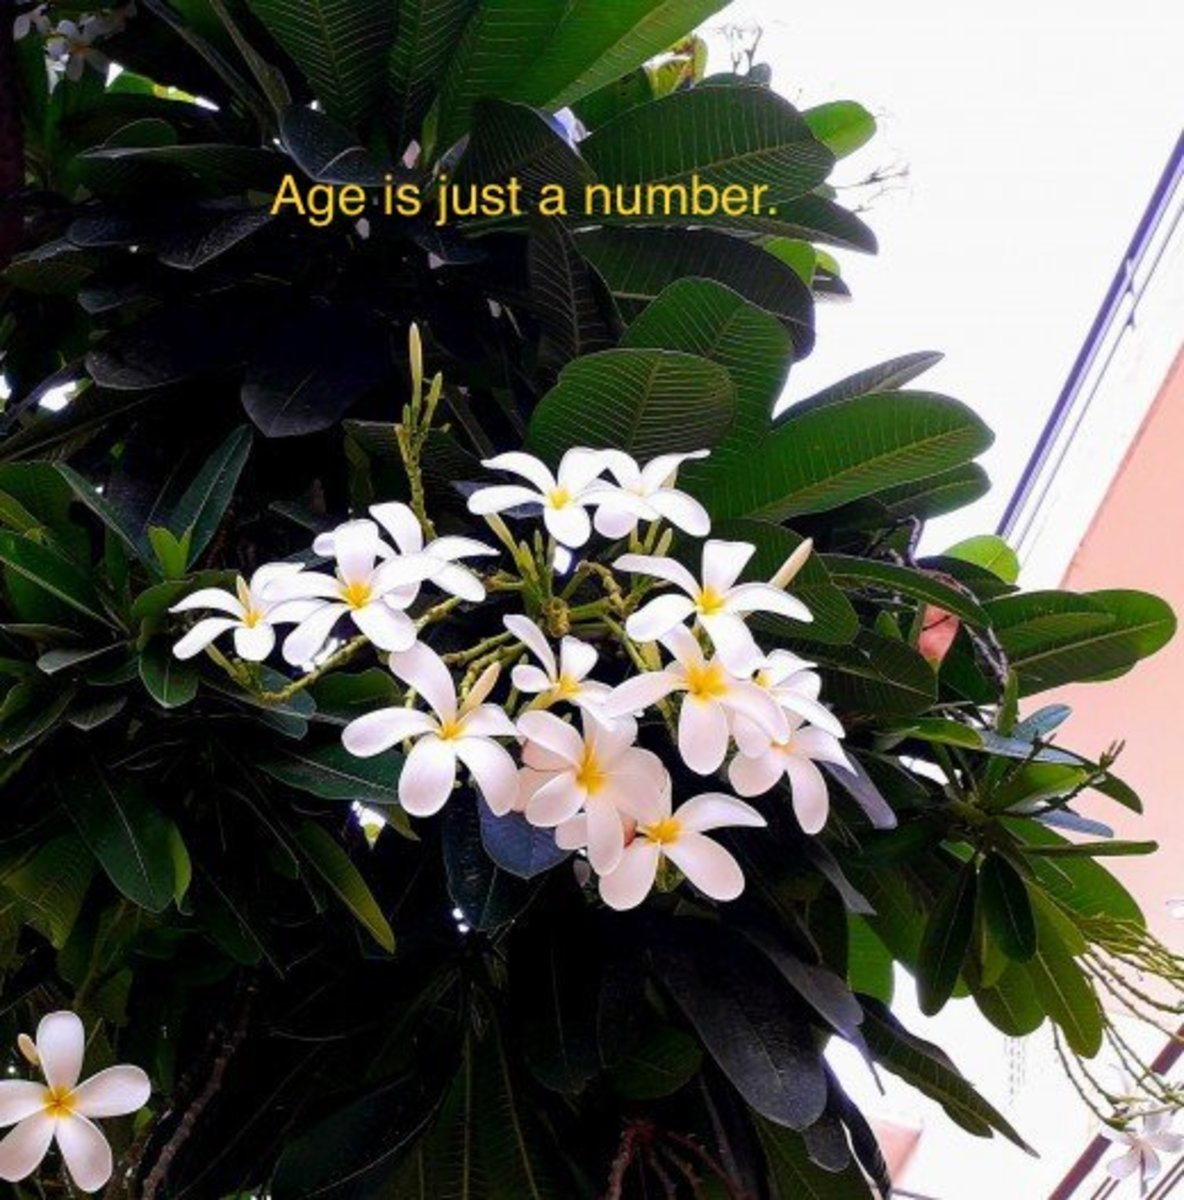 Get inspired by the life cycle of the flowers. Age is just a number.